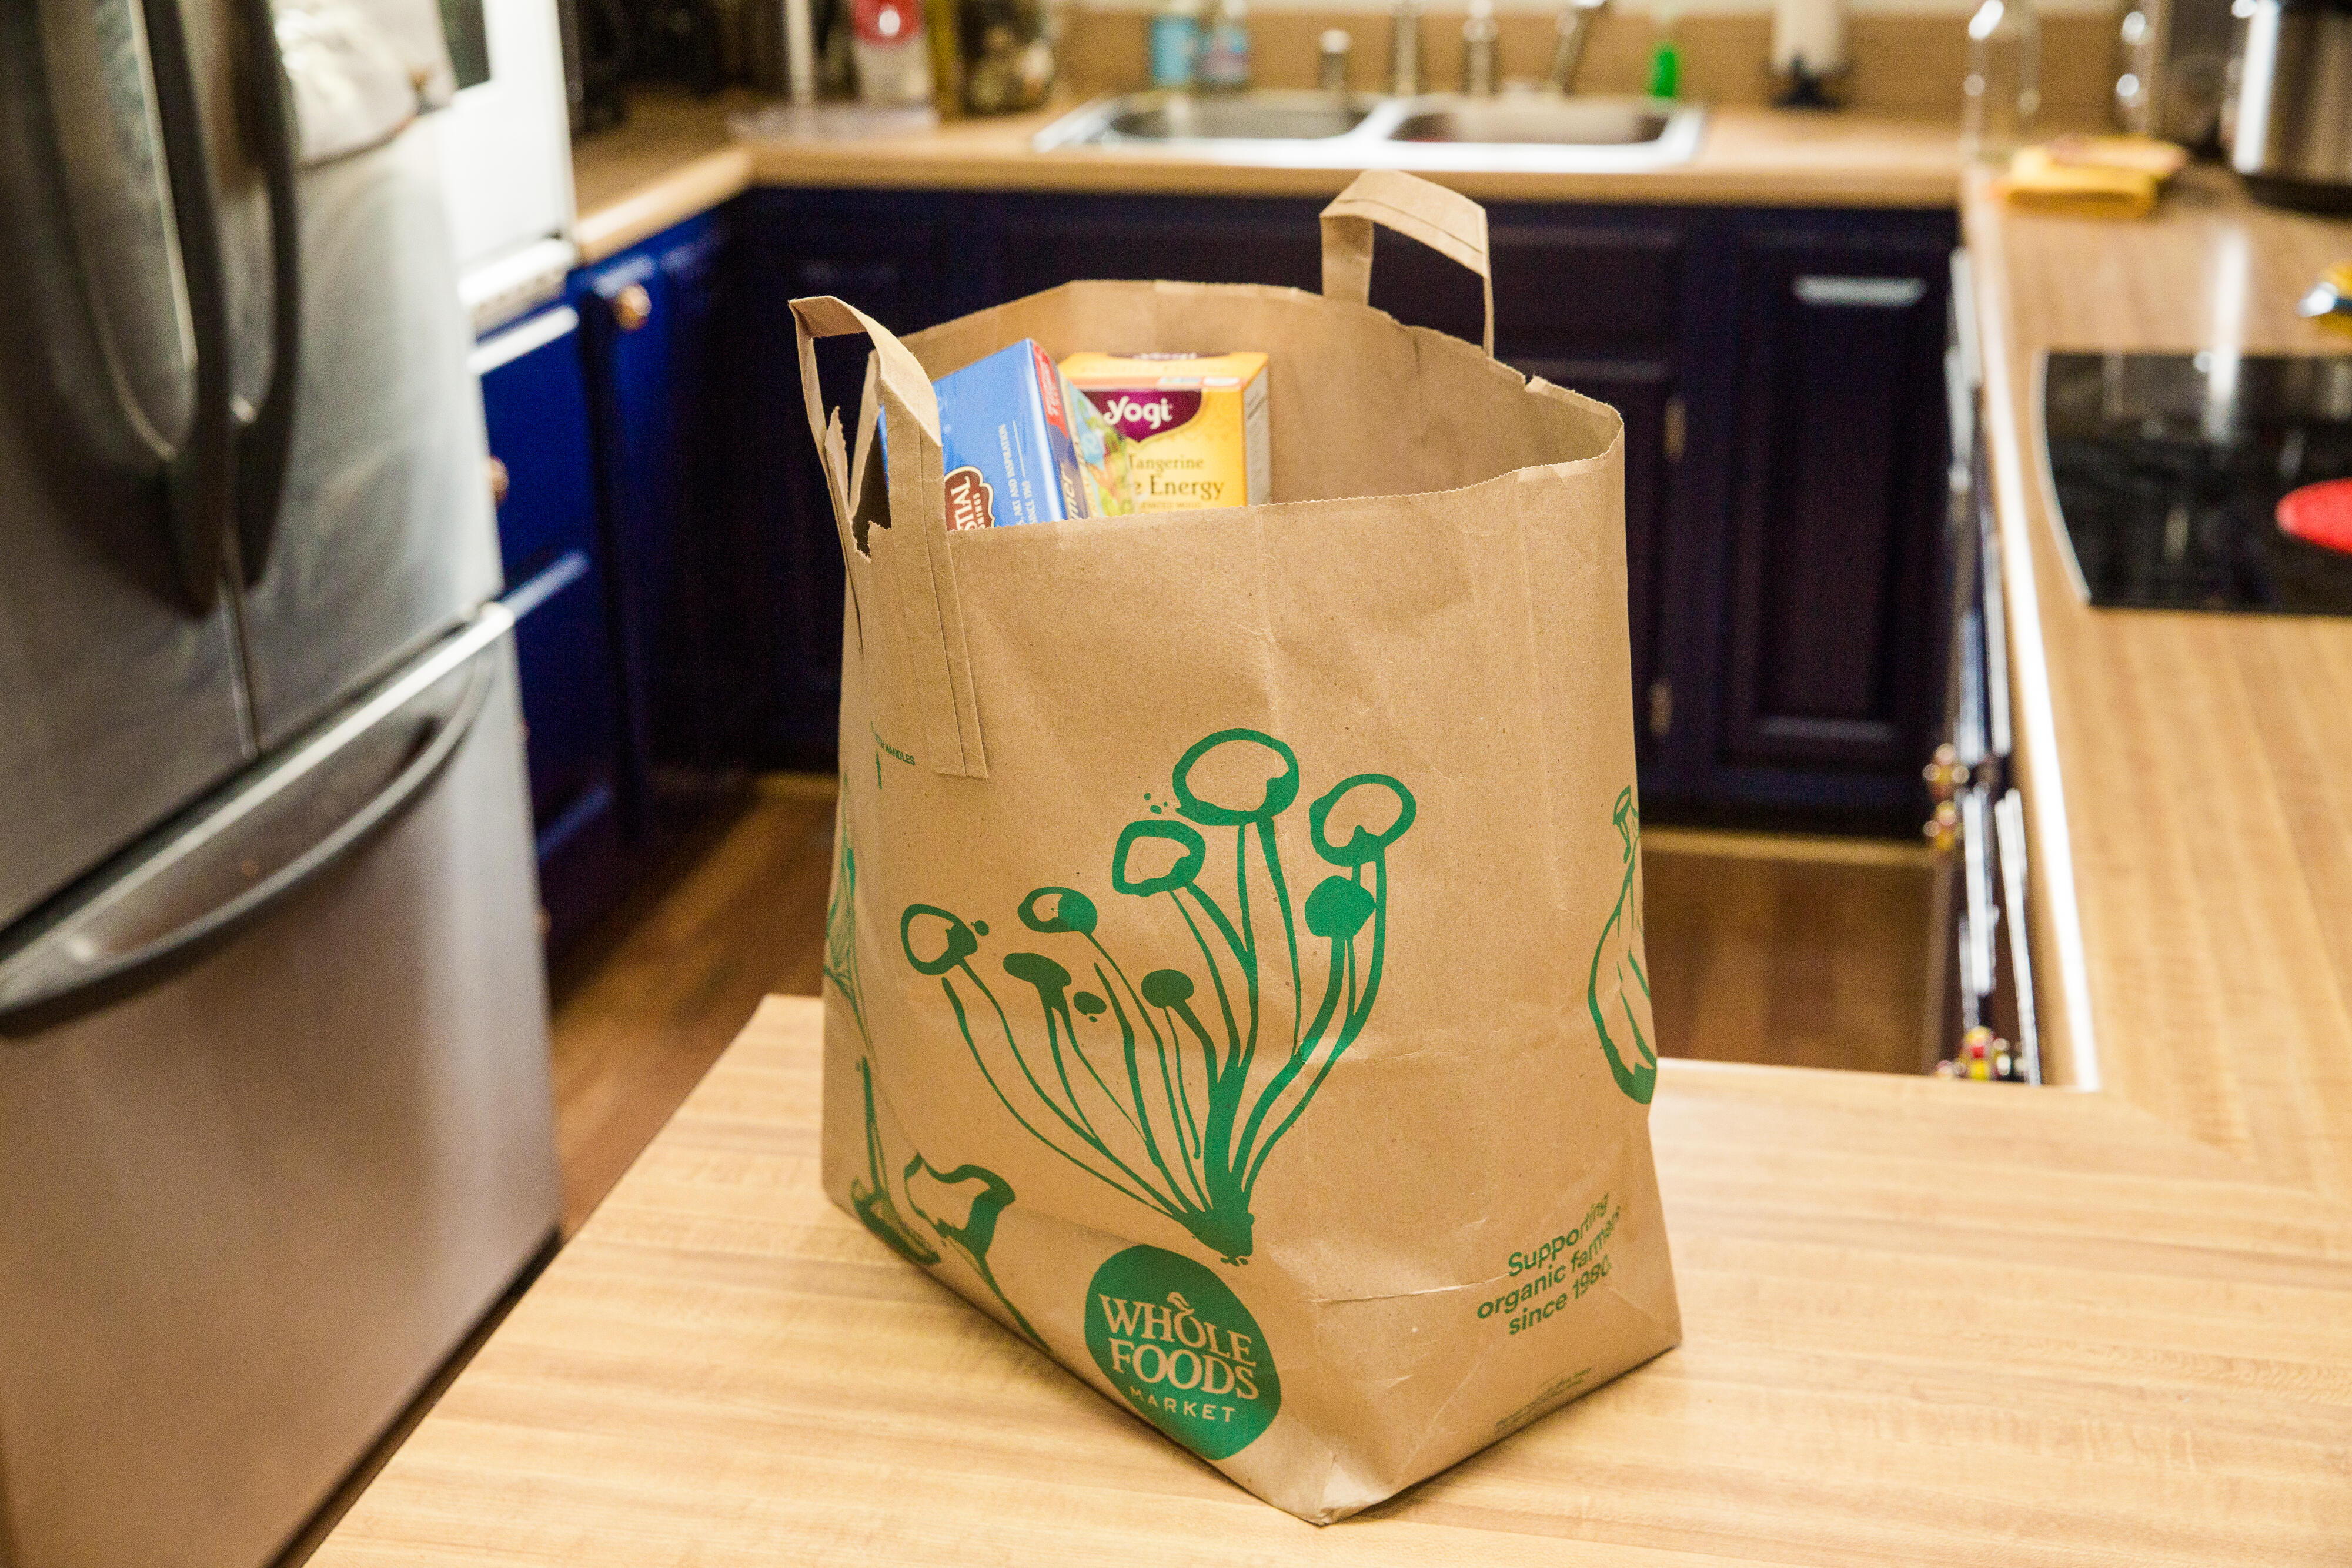 03-bag-of-groceries-at-home-whole-foods-paper